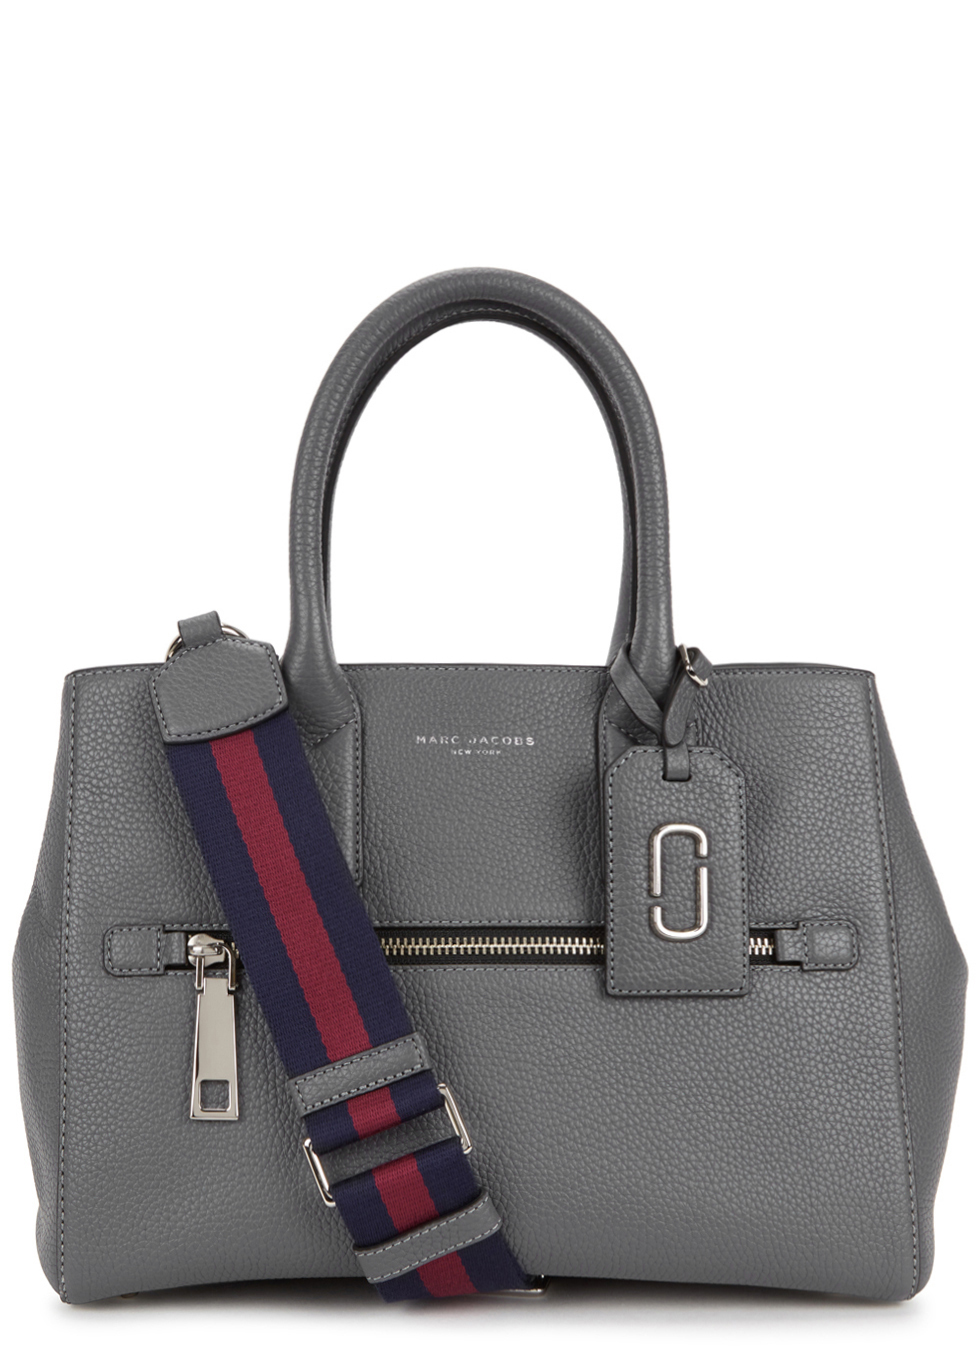 Gotham City Grey Grained Leather Tote - predominant colour: mid grey; occasions: casual, work, creative work; type of pattern: standard; style: tote; length: shoulder (tucks under arm); size: standard; material: leather; pattern: plain; finish: plain; multicoloured: multicoloured; season: a/w 2016